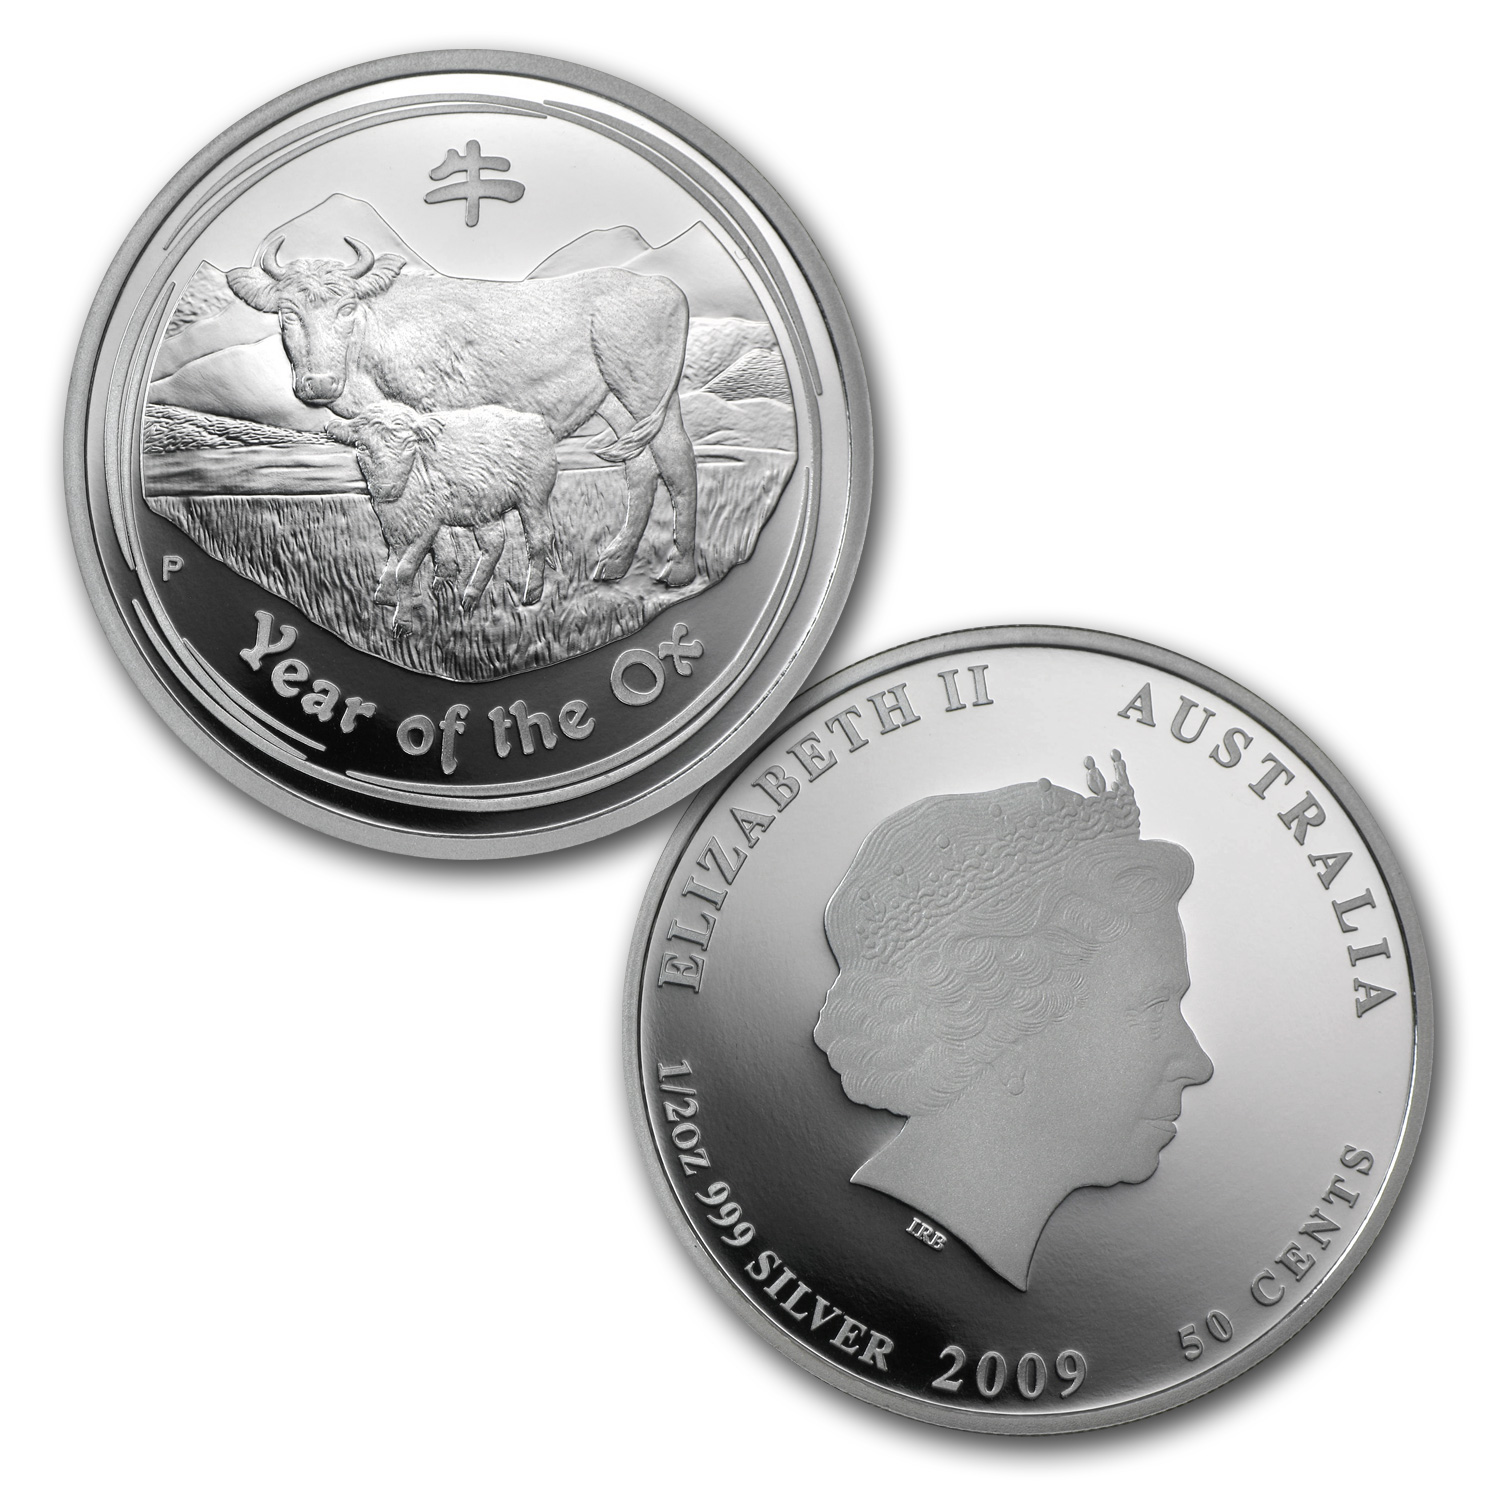 2009 Australia 3-Coin Silver Year of the Ox Proof Set